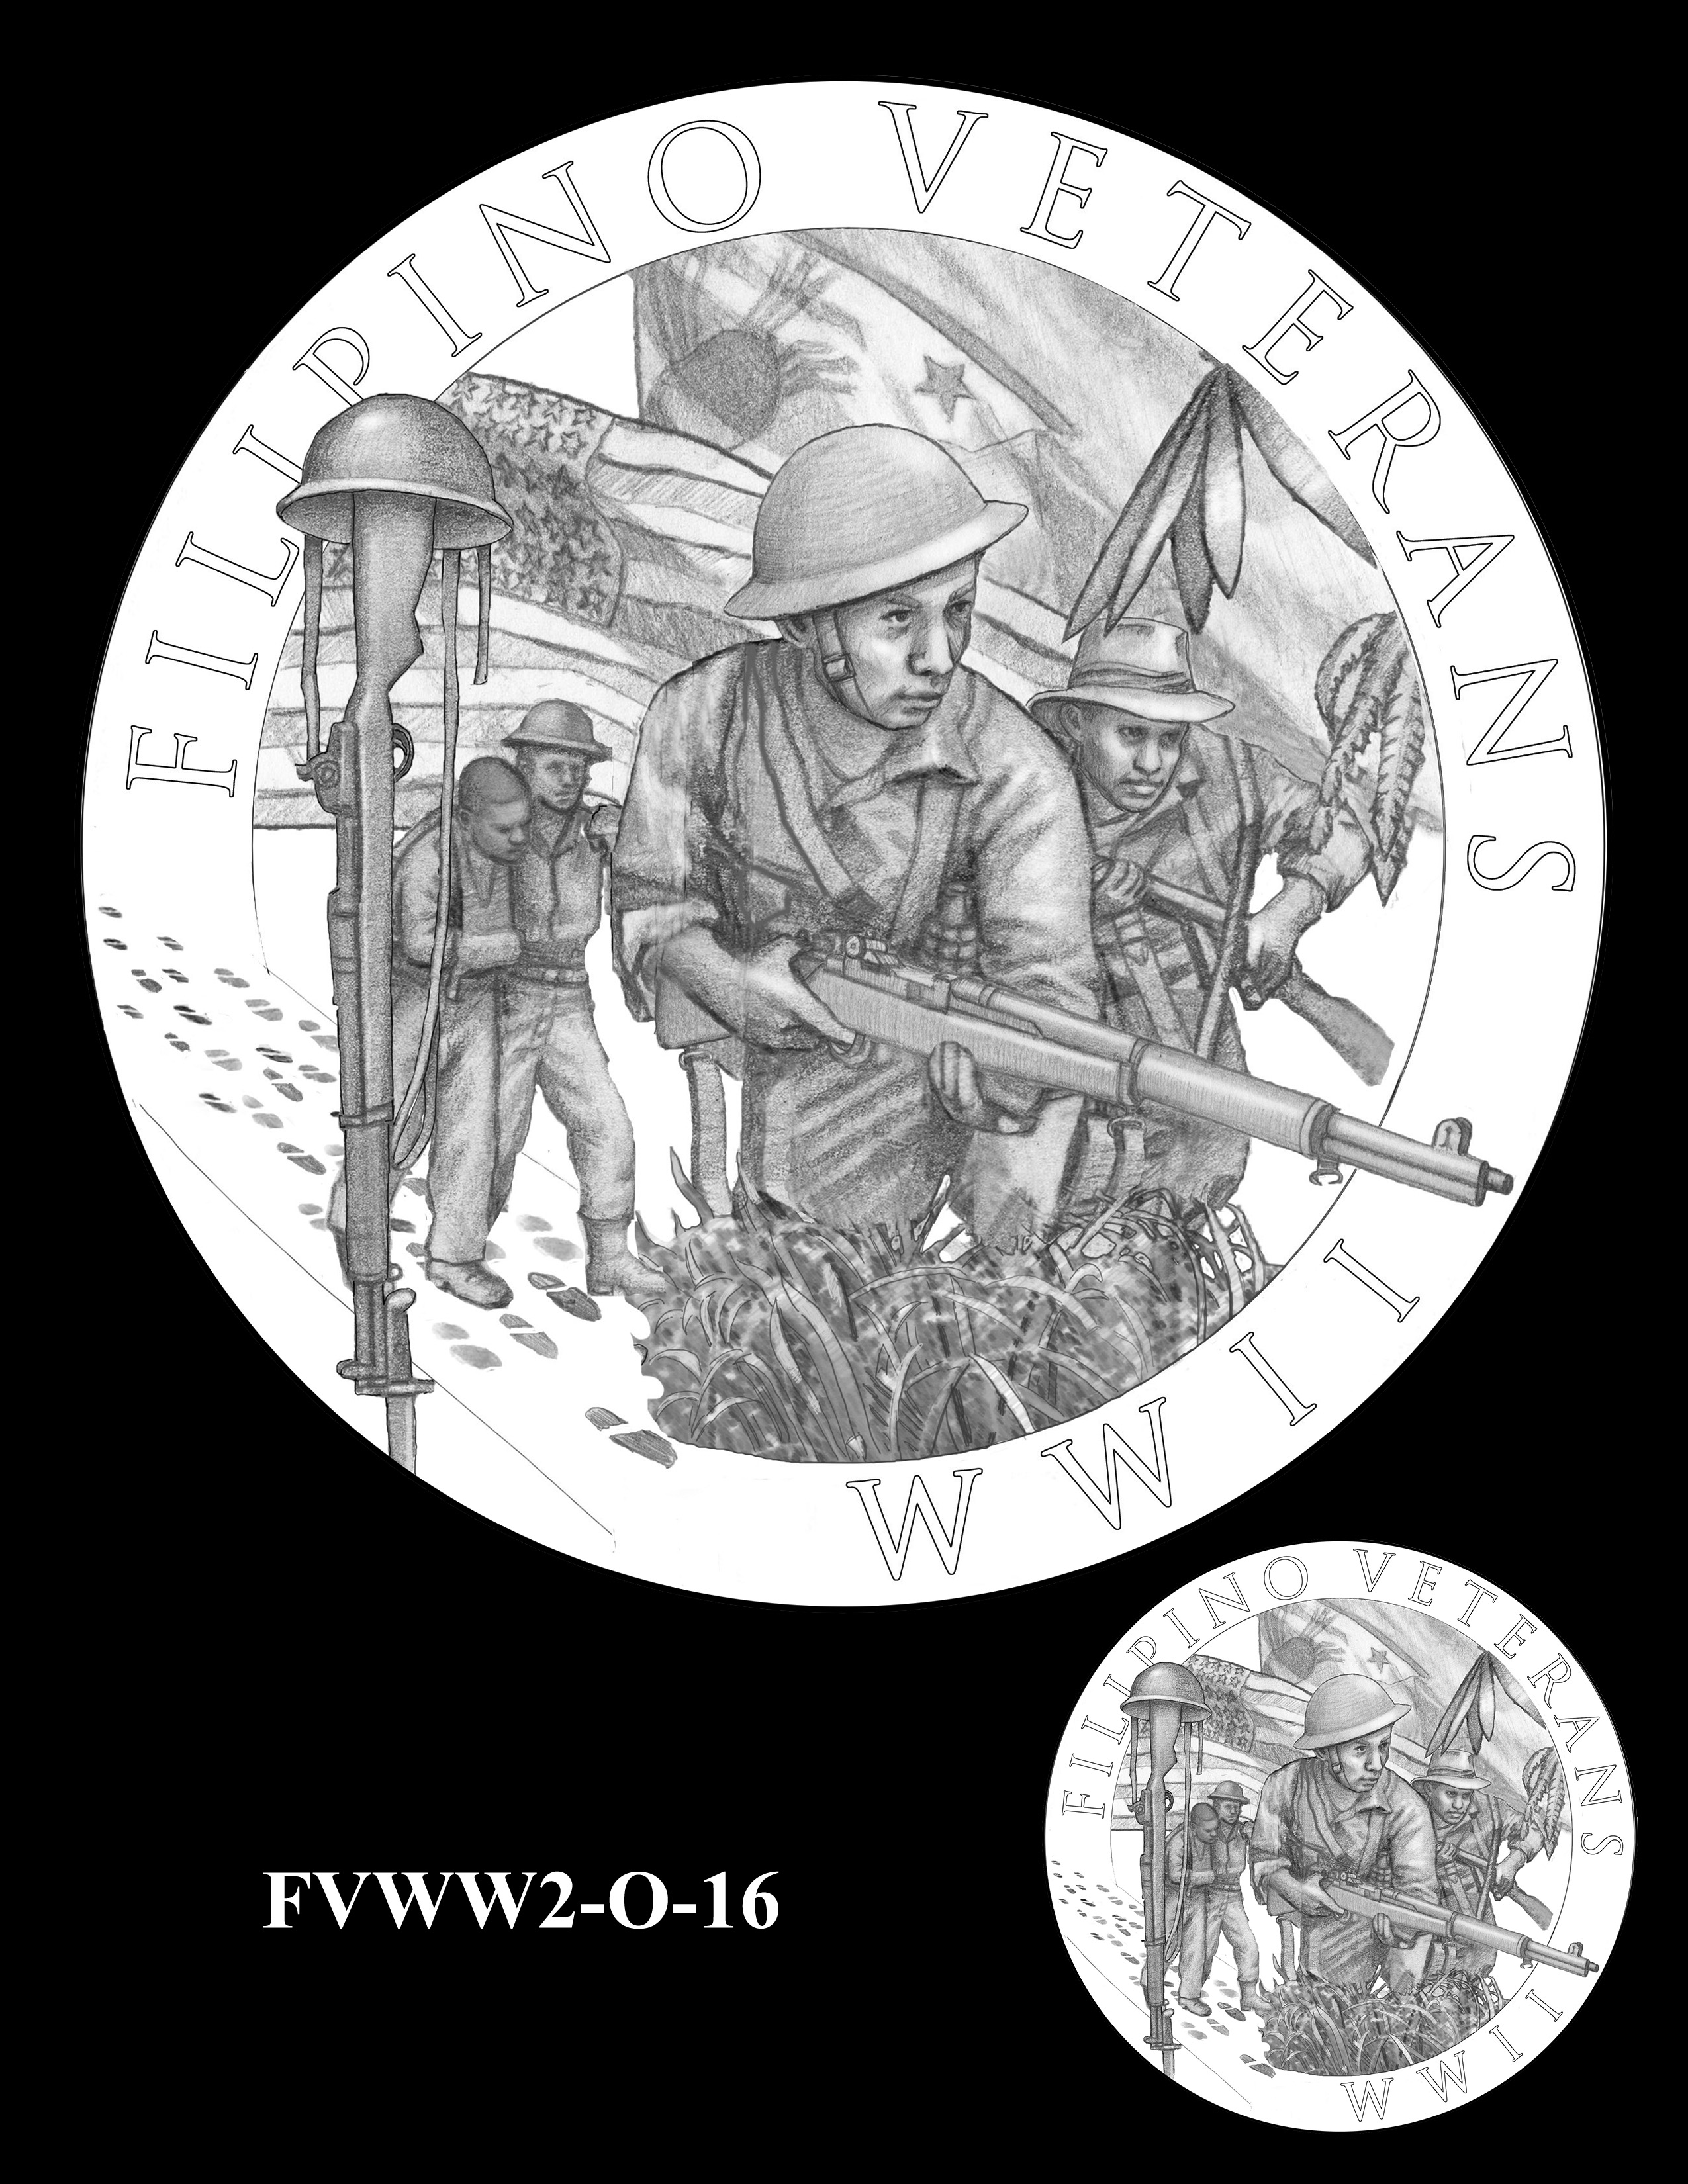 FVWW2-O-16 -- Filipino Veterans of World War II Congressional Gold Medal